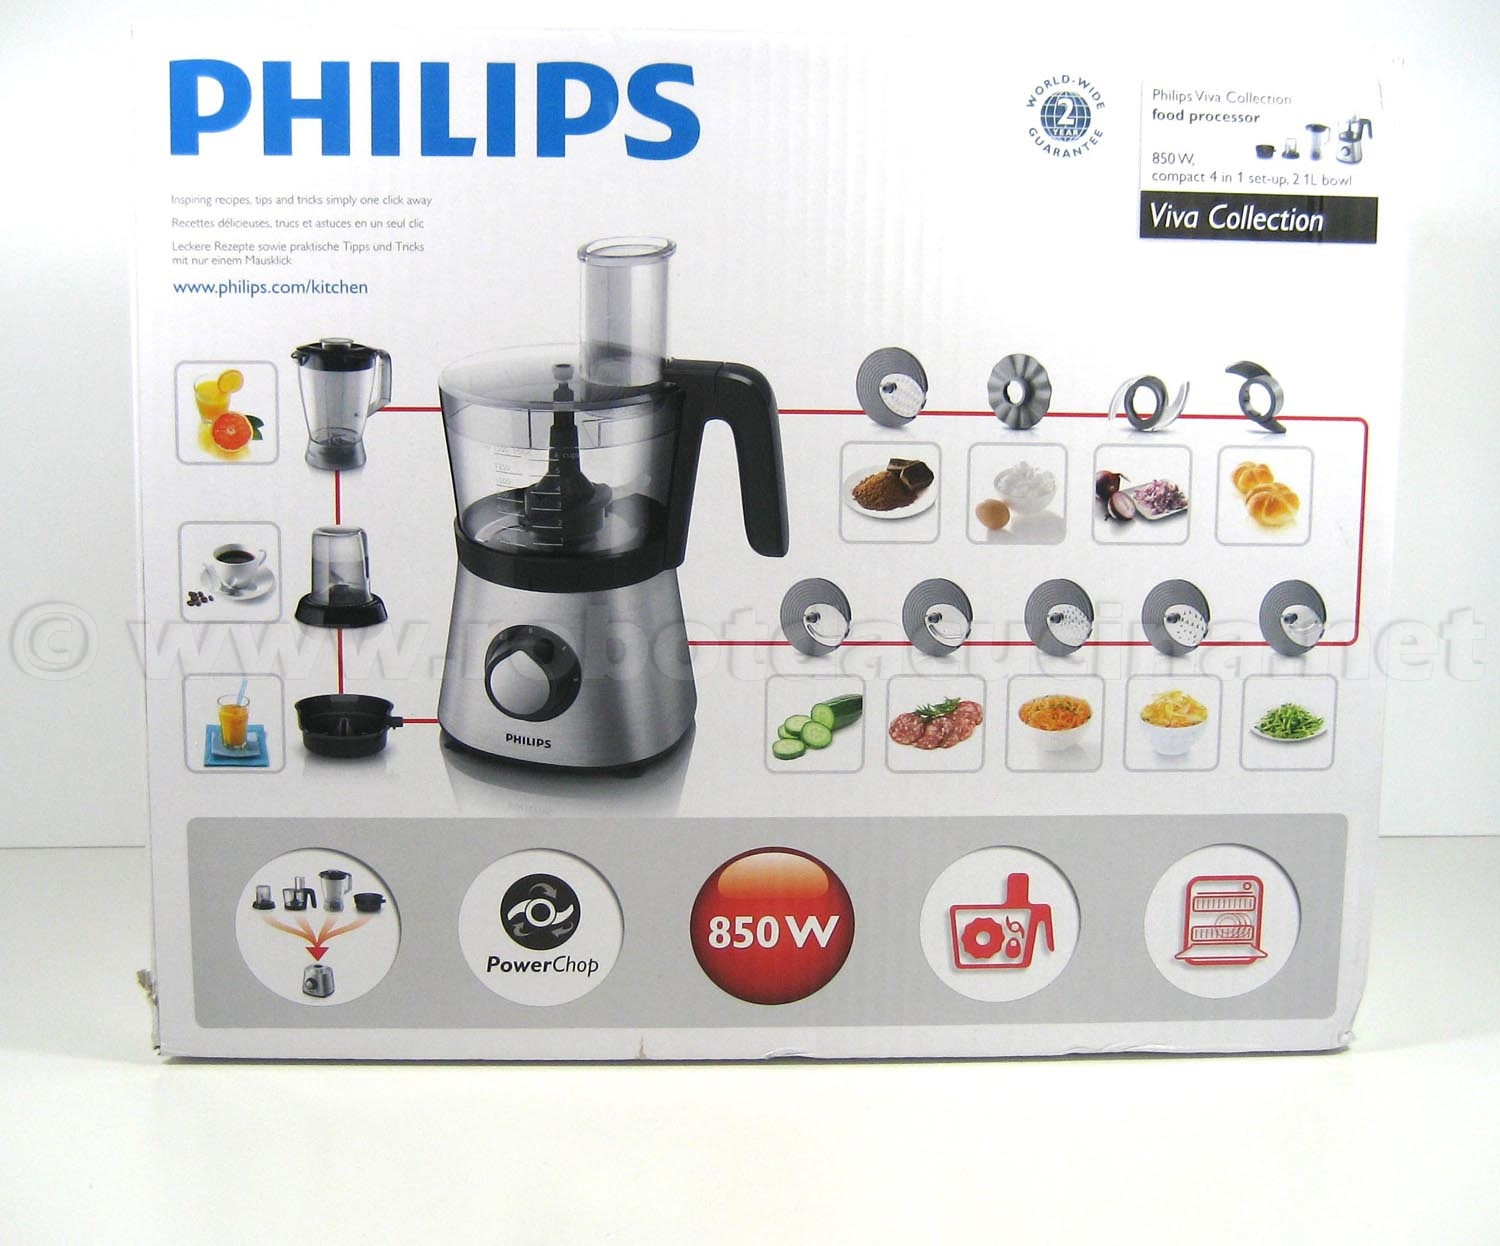 Robot Da Cucina Philips Come Si Usa Philips Hr7769 00 Viva Collection Il Parere Degli Esperti